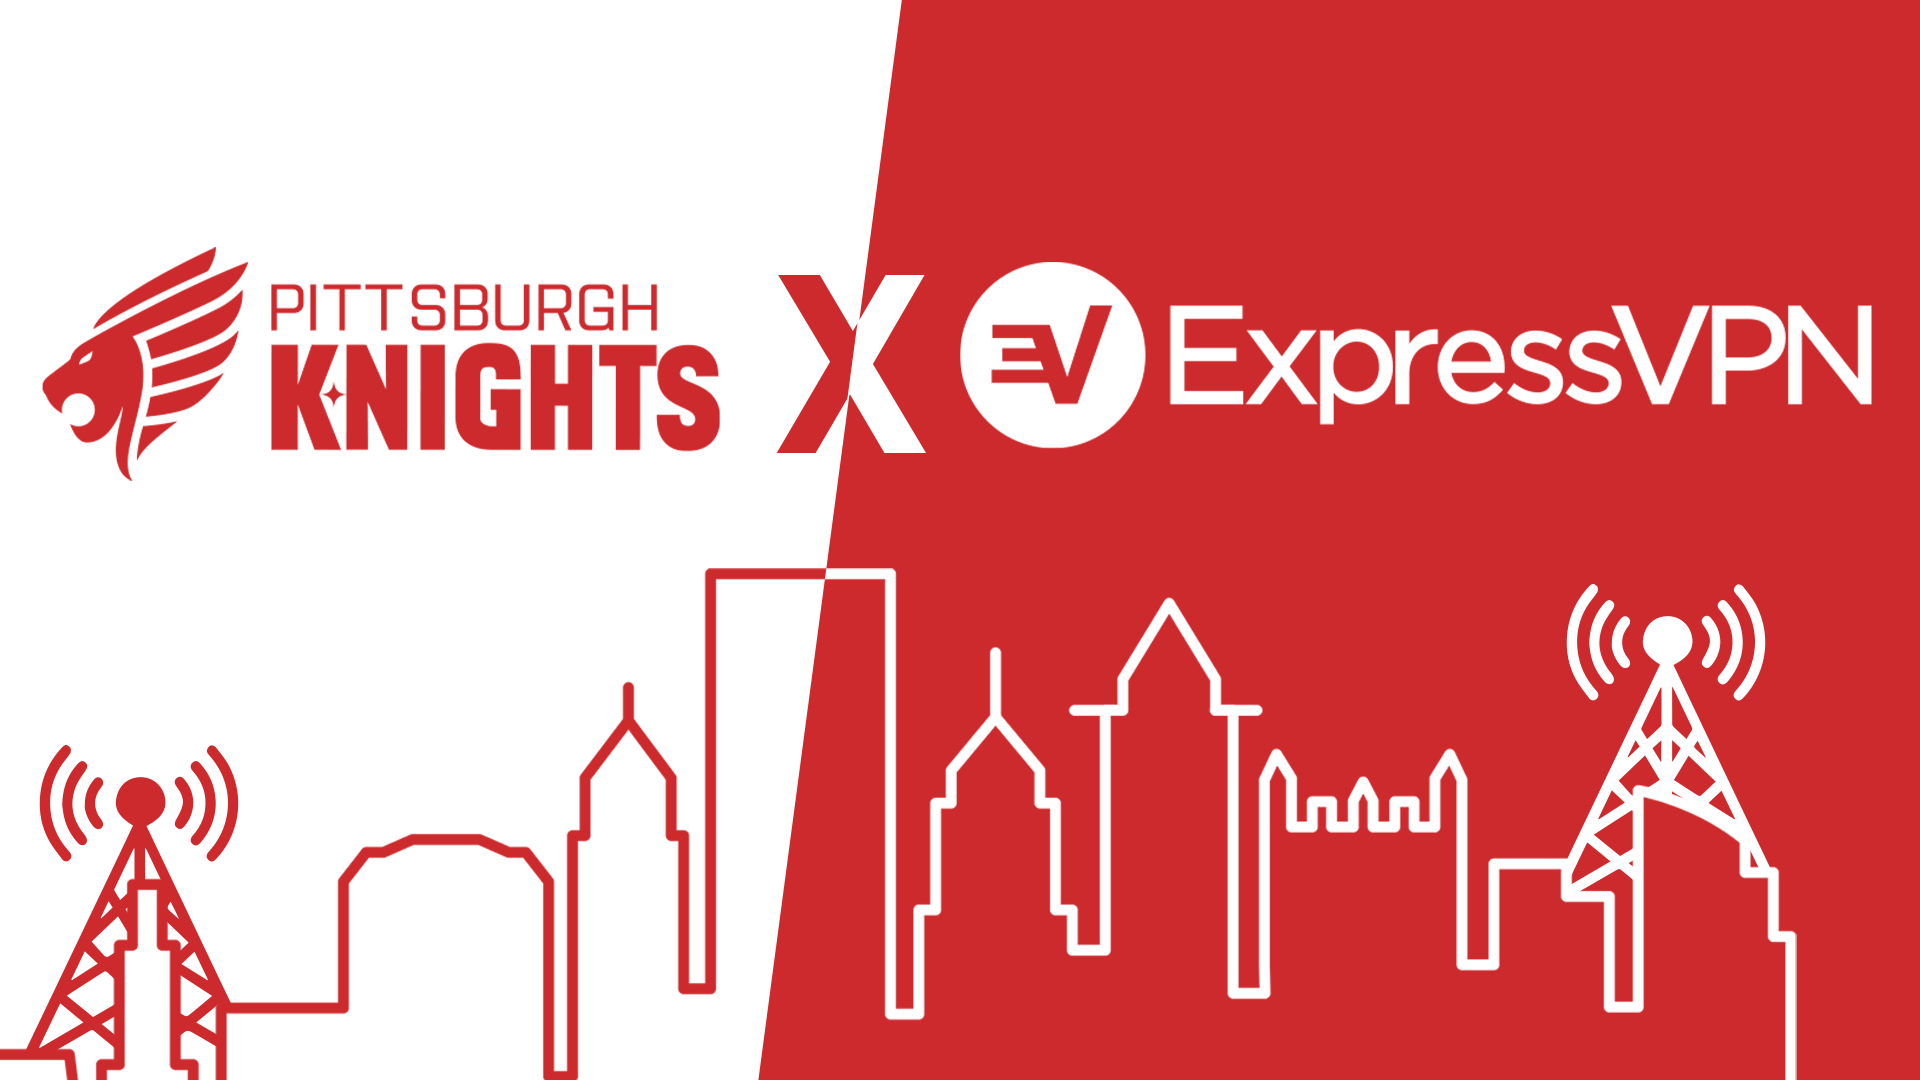 Pittsburgh Knights ExpressVPN